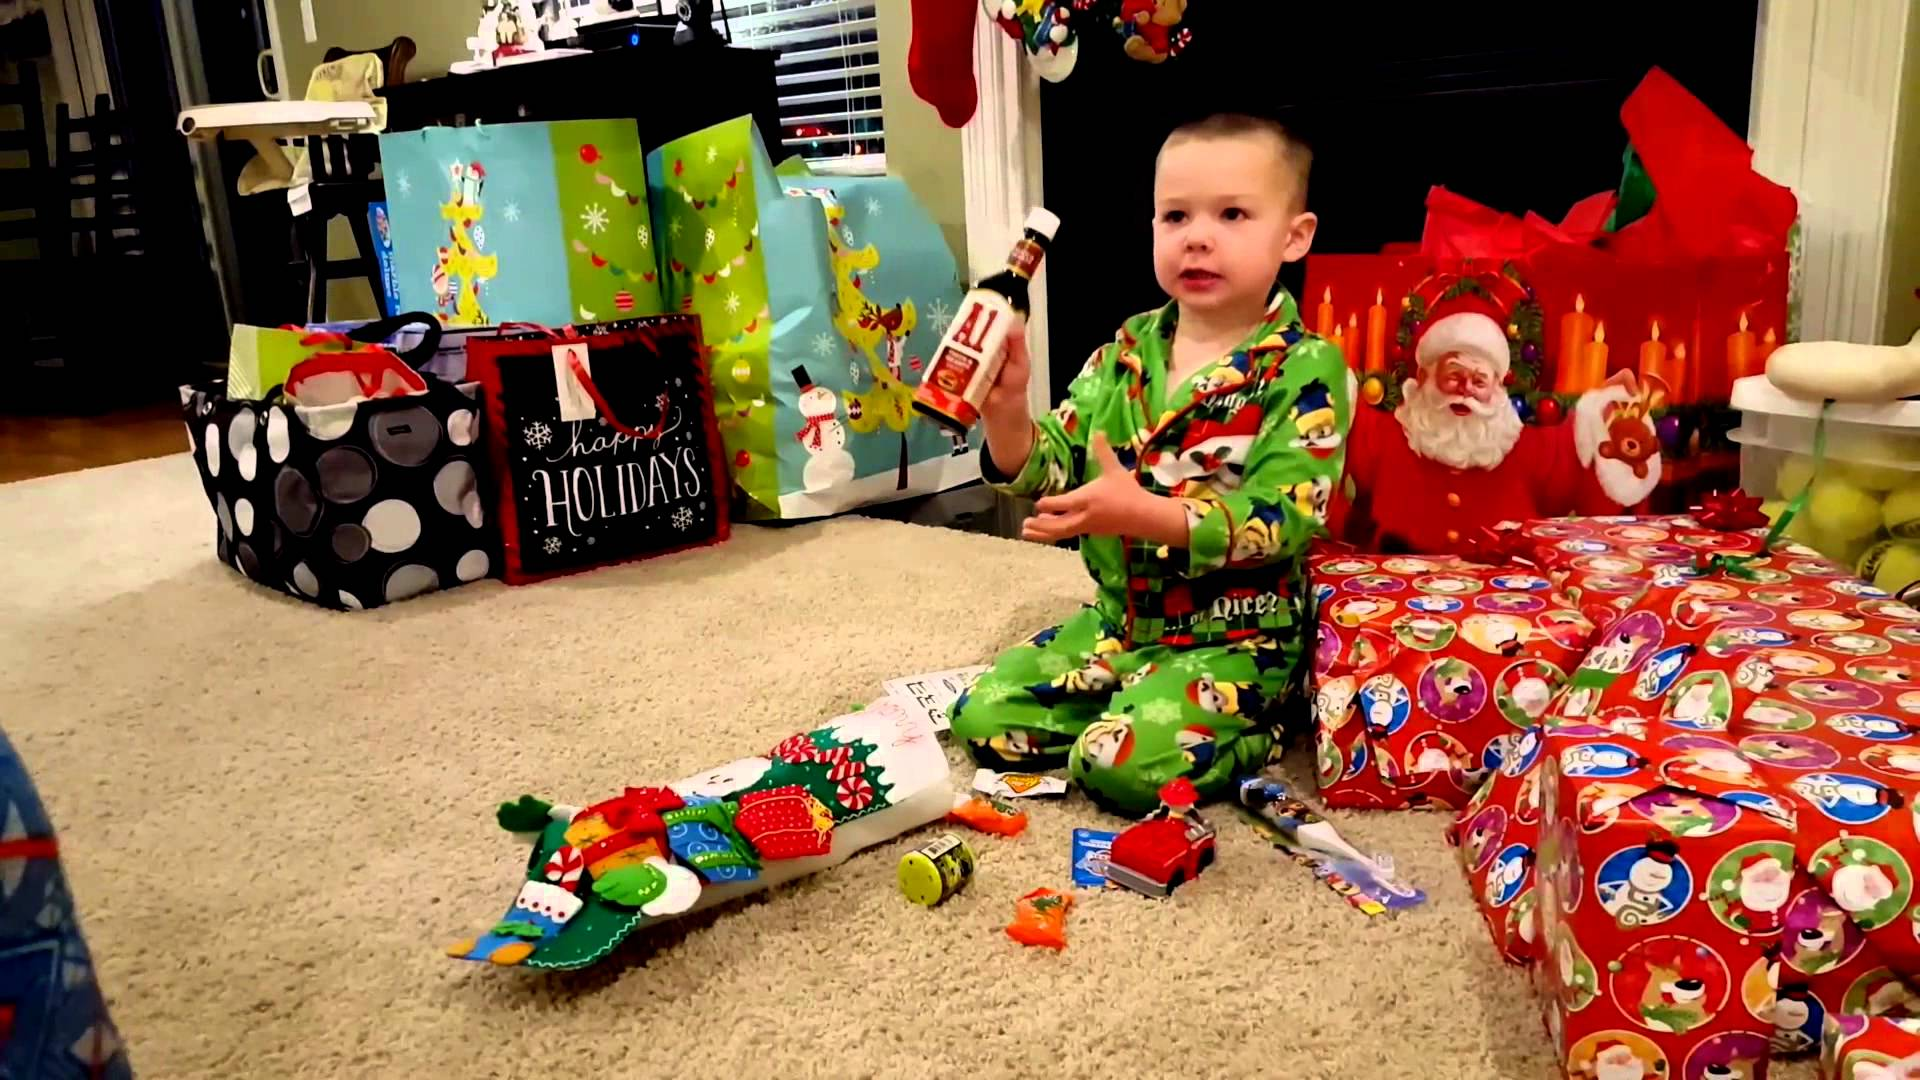 This Kid Can't Believe He Got His Very Own Steak Sauce for Christmas